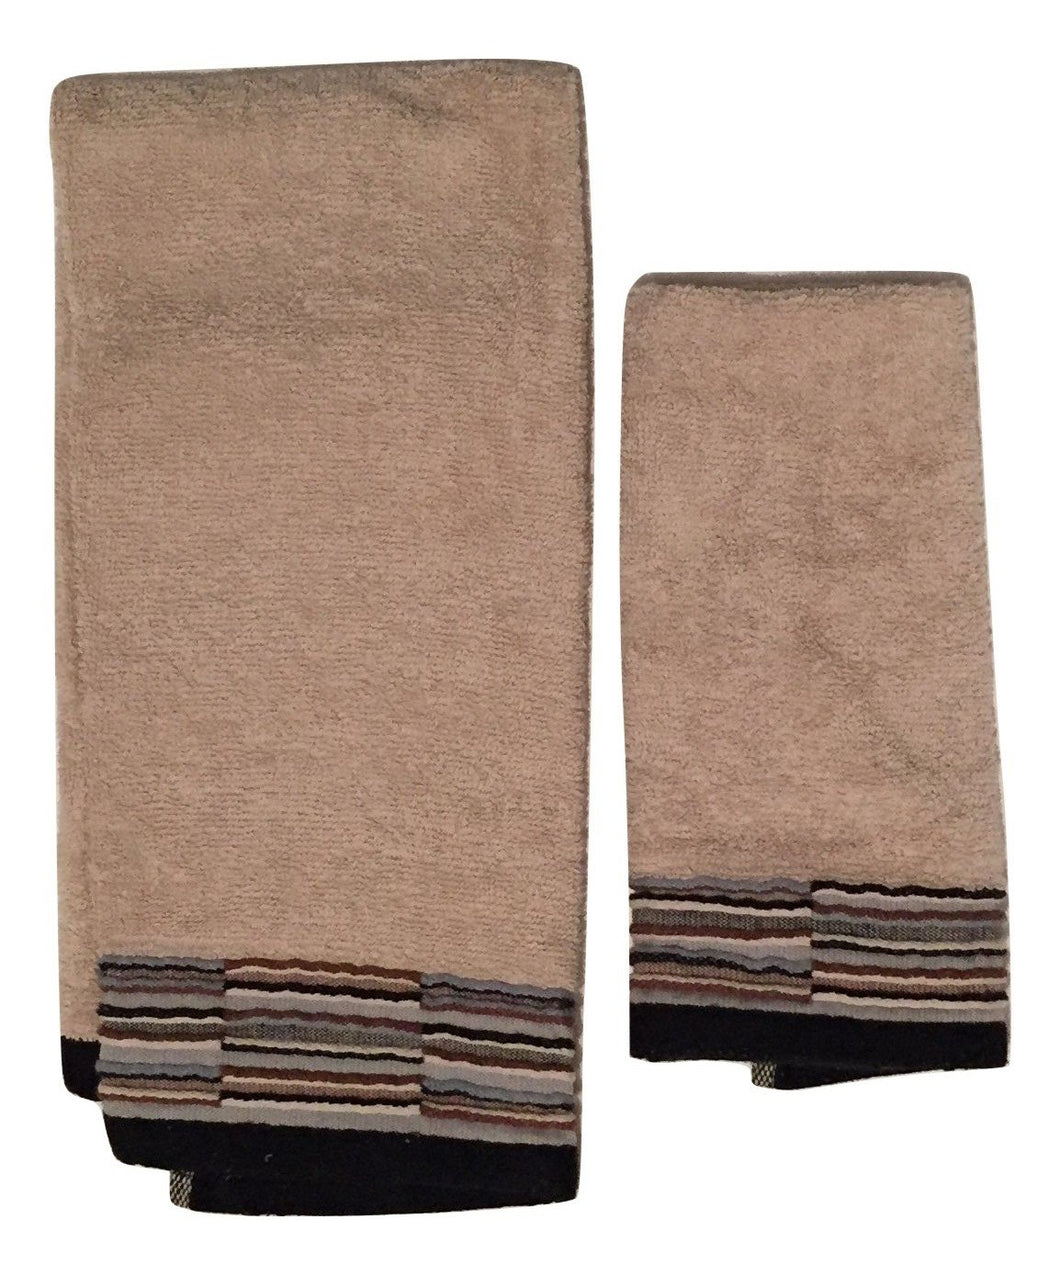 Saturday Knight Eclipse Black Natural 2 piece Bathroom Hand Finger Tip Towel Set